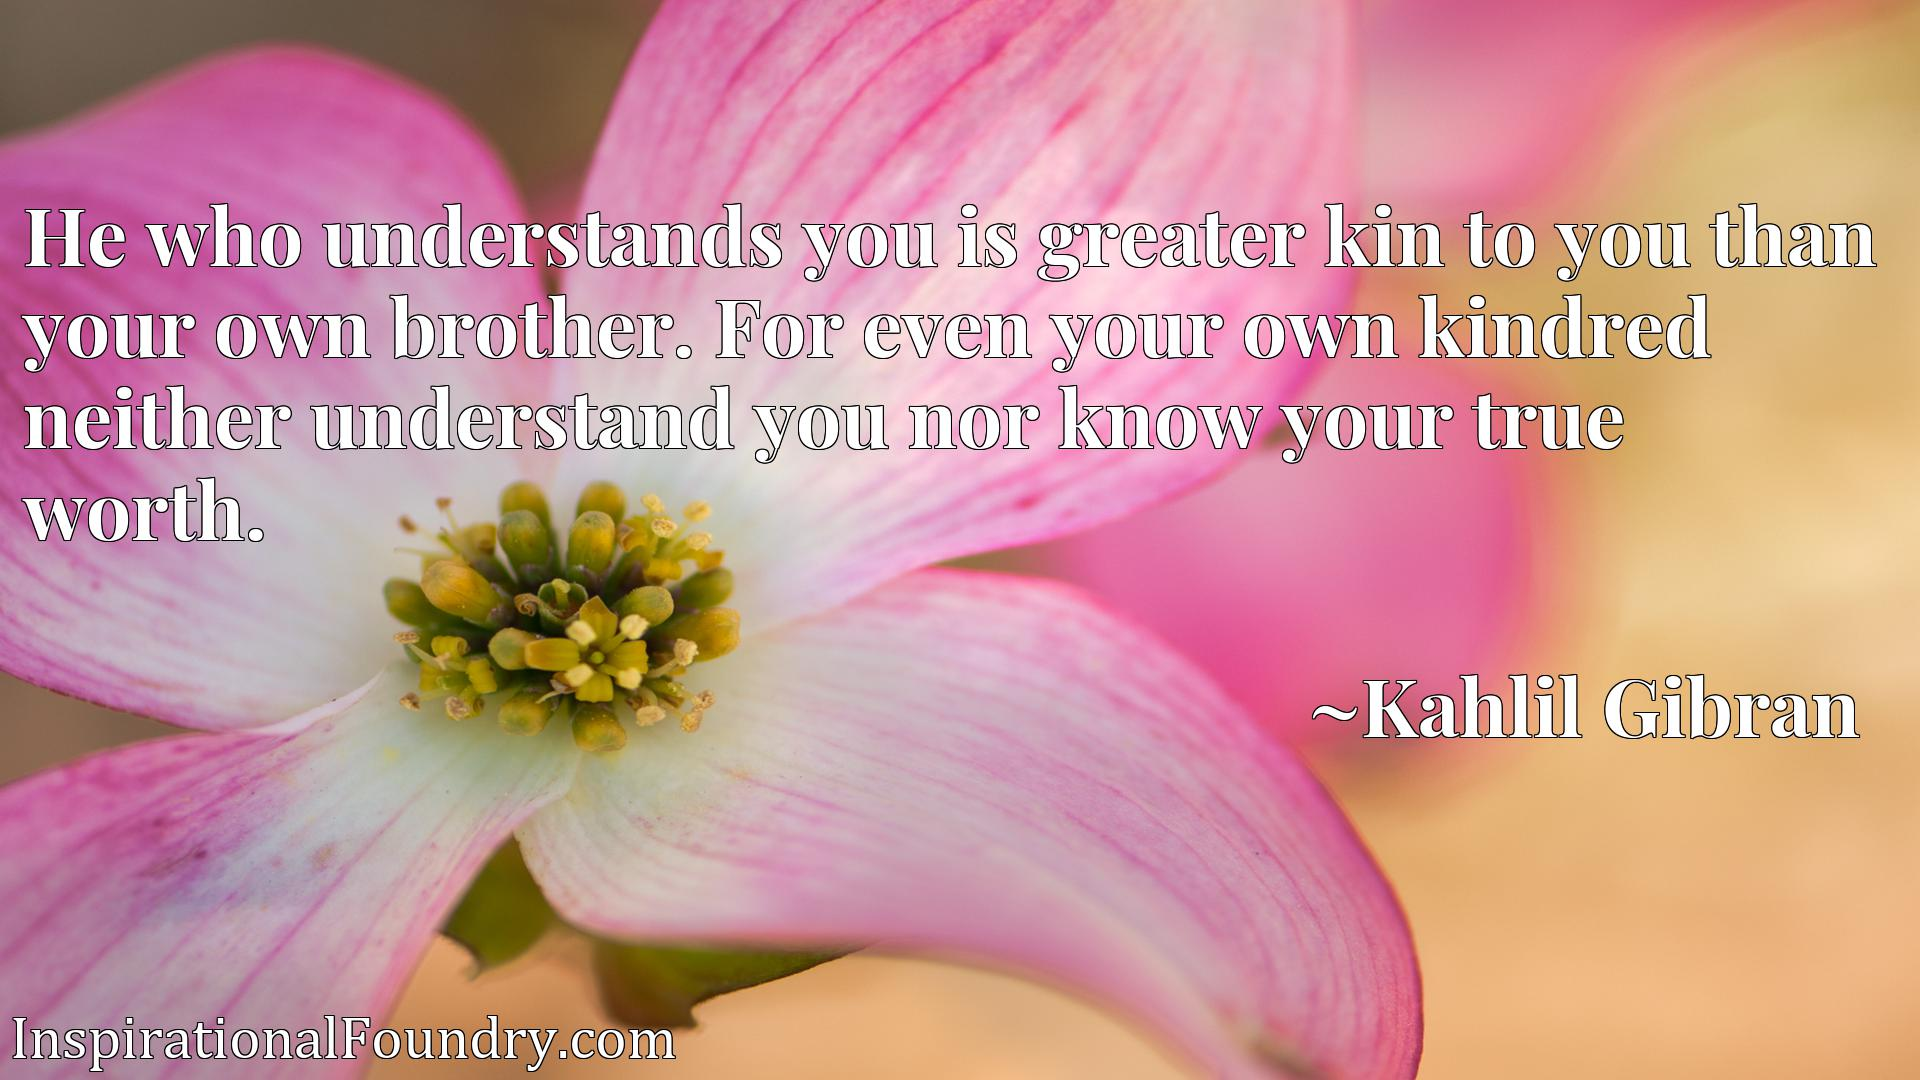 He who understands you is greater kin to you than your own brother. For even your own kindred neither understand you nor know your true worth.